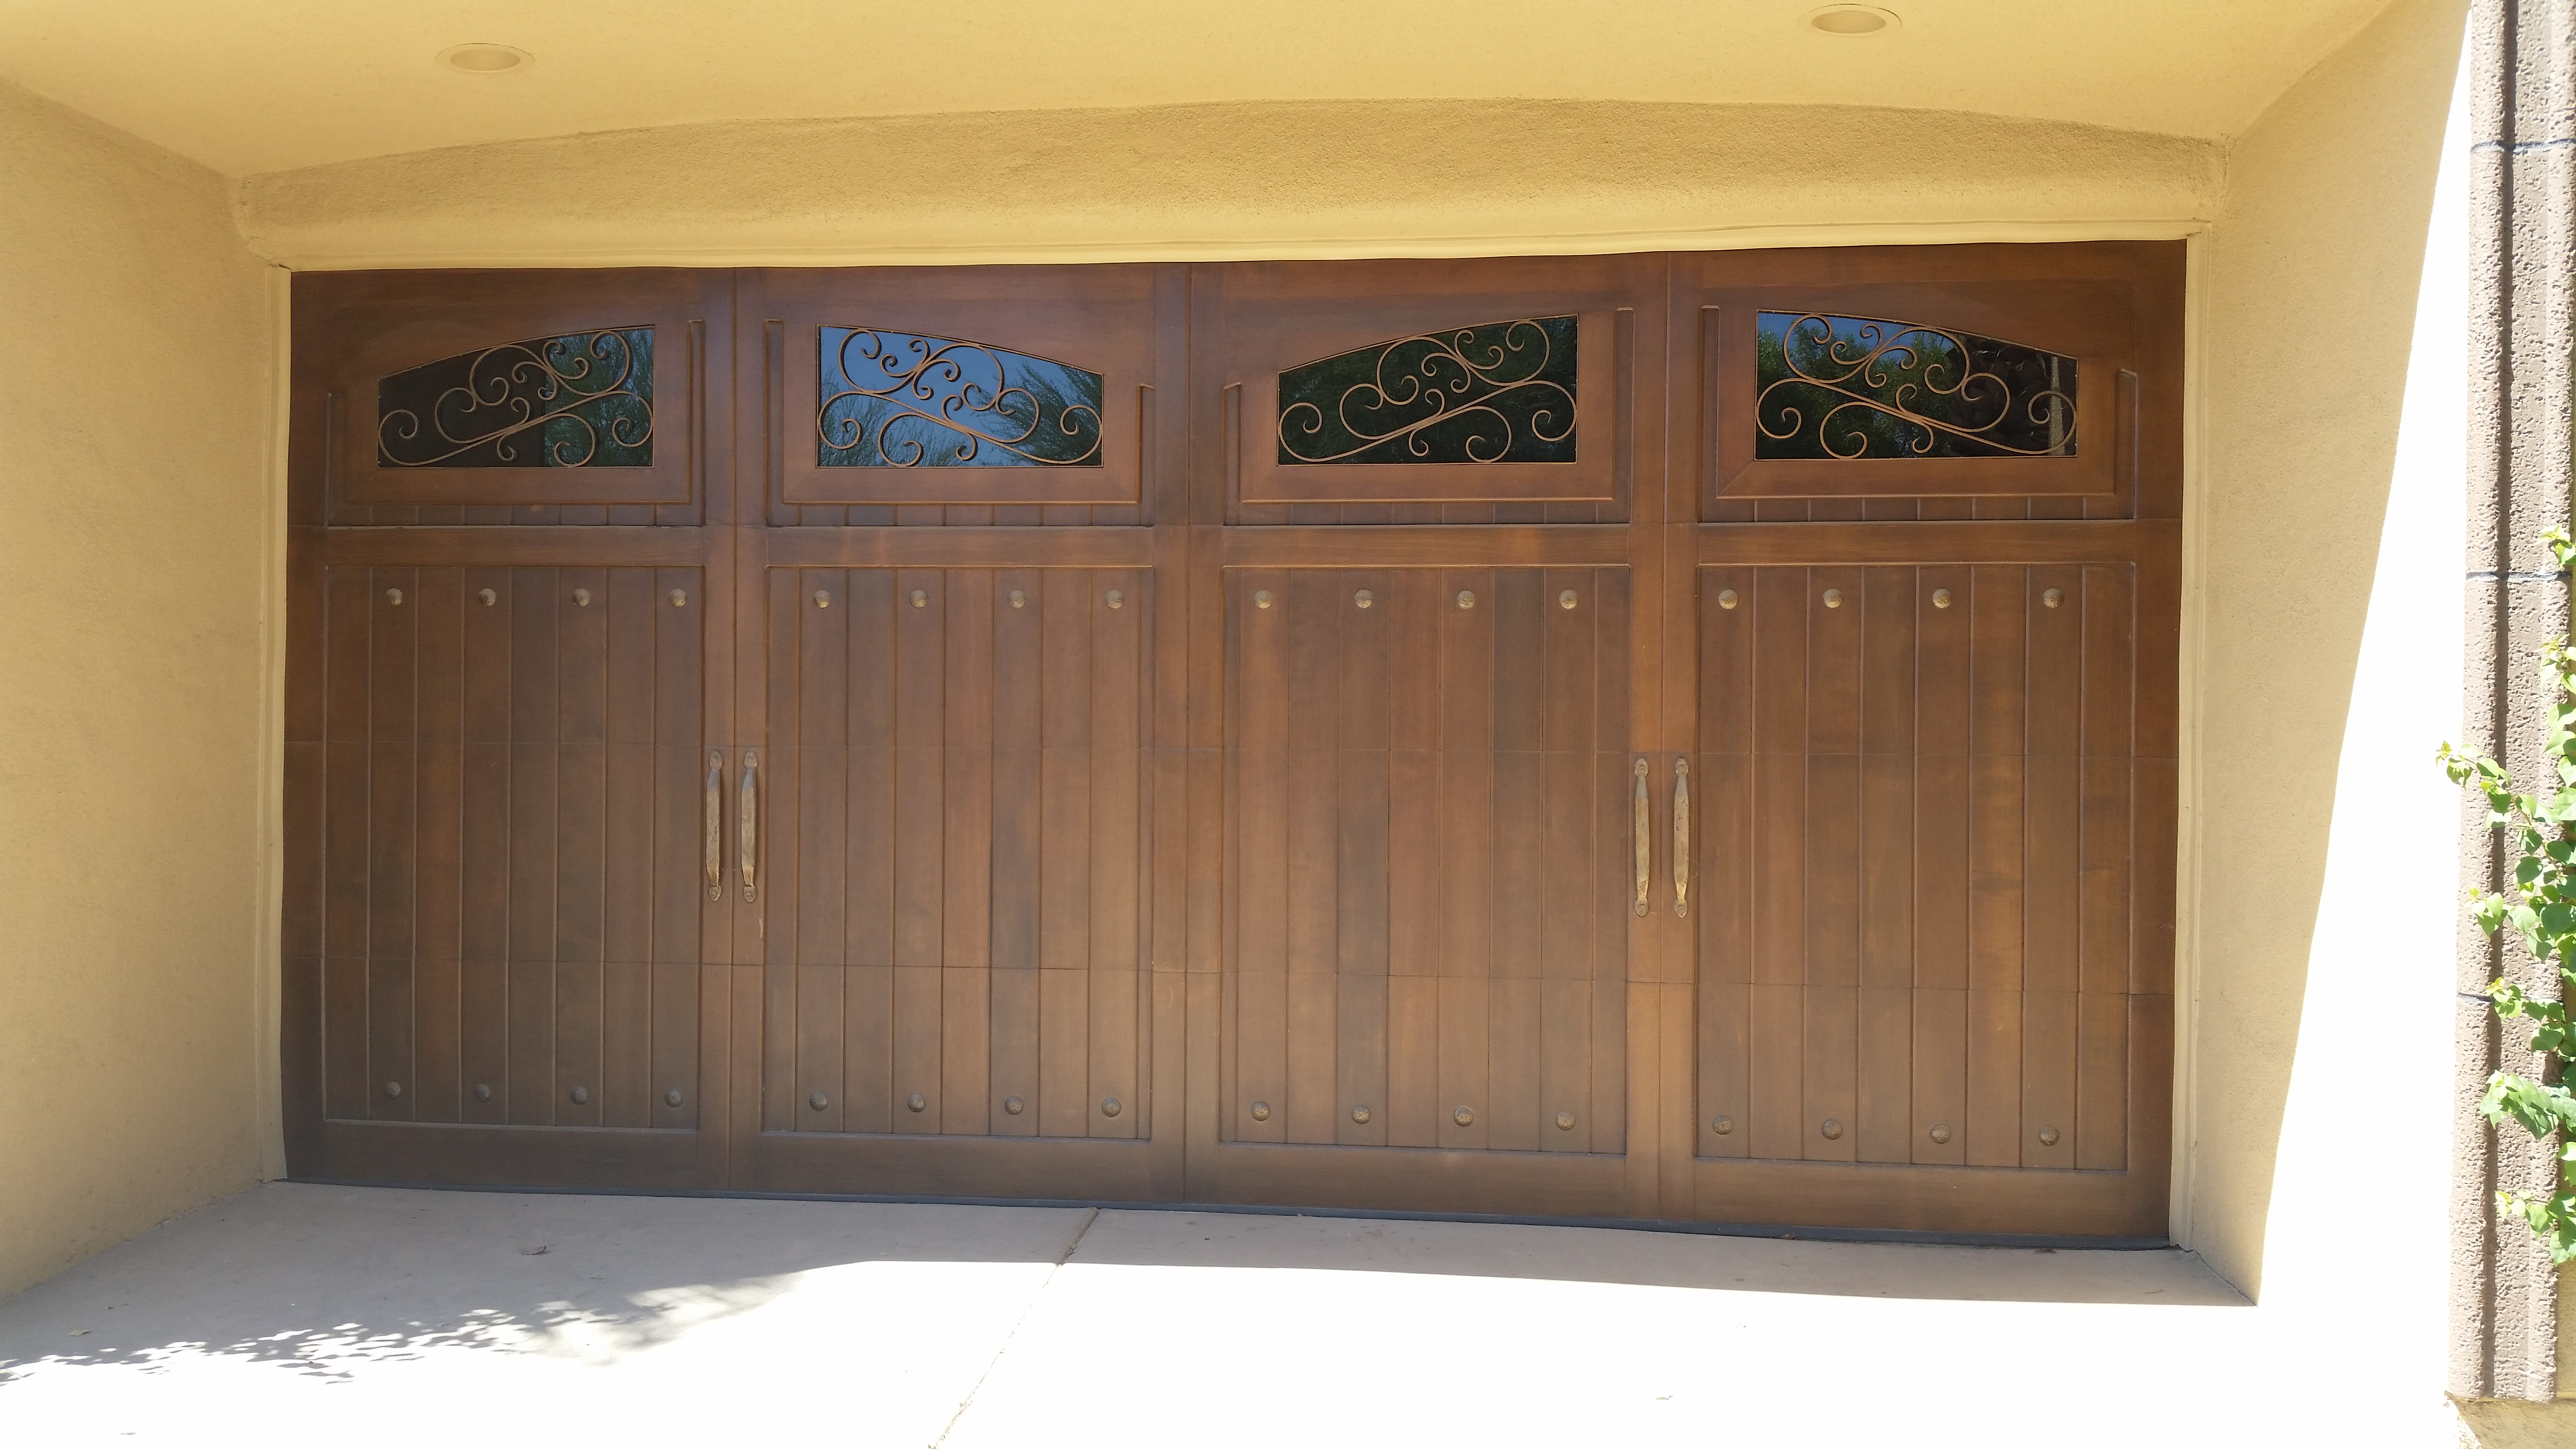 2988 #9F7B2C Double Arch Design With Windows And Decorative Hardware Garage Doors  wallpaper Double Garage Doors With Windows 38455312